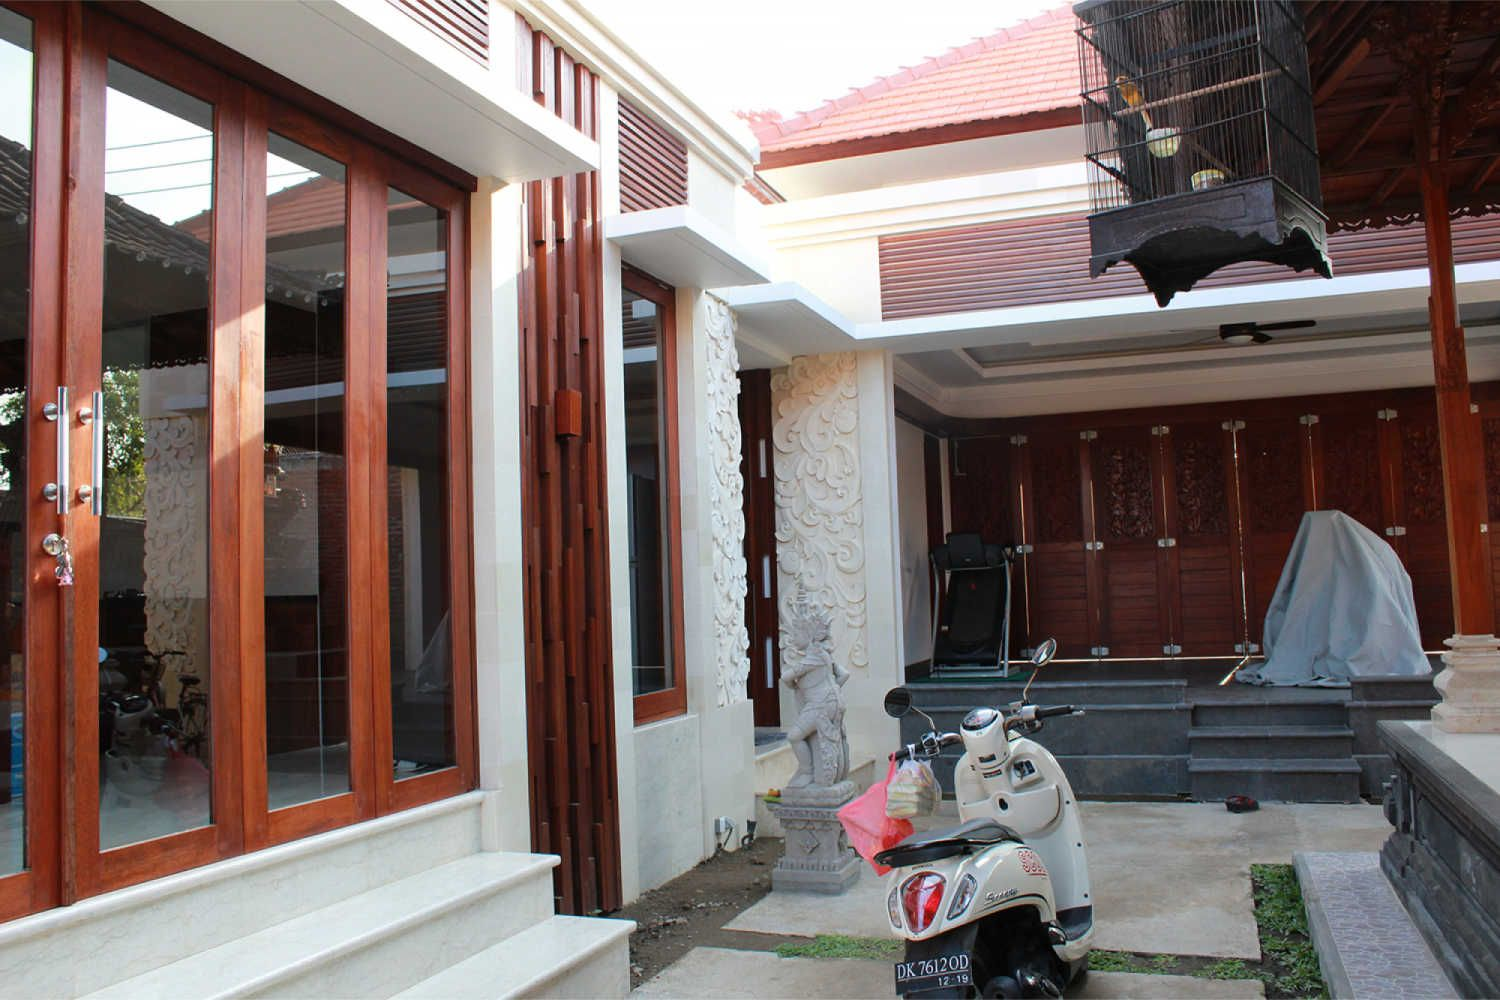 Construction Result of Mr. Komang Adi Private House - Kerobokan, Bali #architectbangalore #architecture #architectureindia #architectnewdelhi #architectures #housedesigner #architecturalservices #architectahmedabad #architect #architectkolkata #luxuryhomedesigner #architectchennai #emporioarchitect  #architectsurat #architecthyderabad #indianarchitecture  #architectindia #architectmumbai